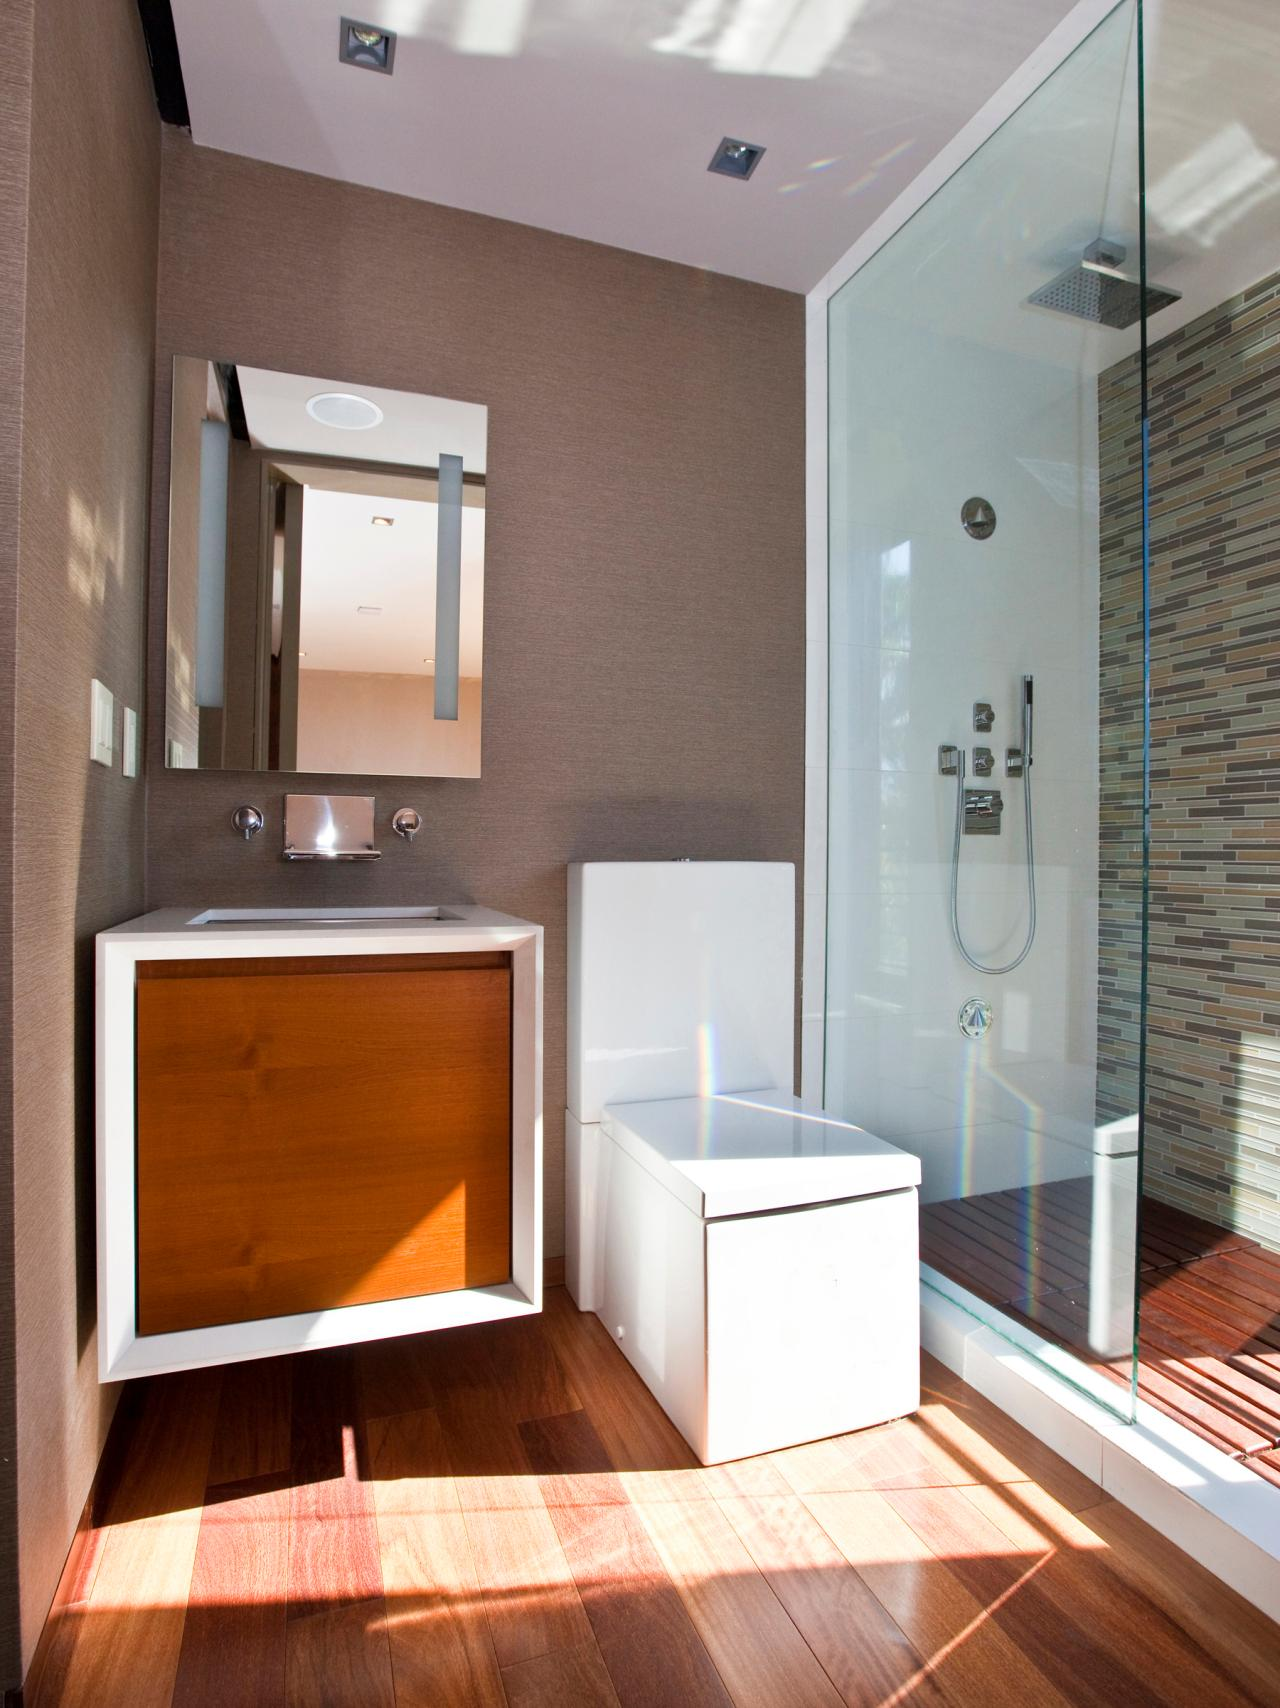 Japanese Style Decorating Ideas japanese-style bathrooms: pictures, ideas & tips from hgtv | hgtv